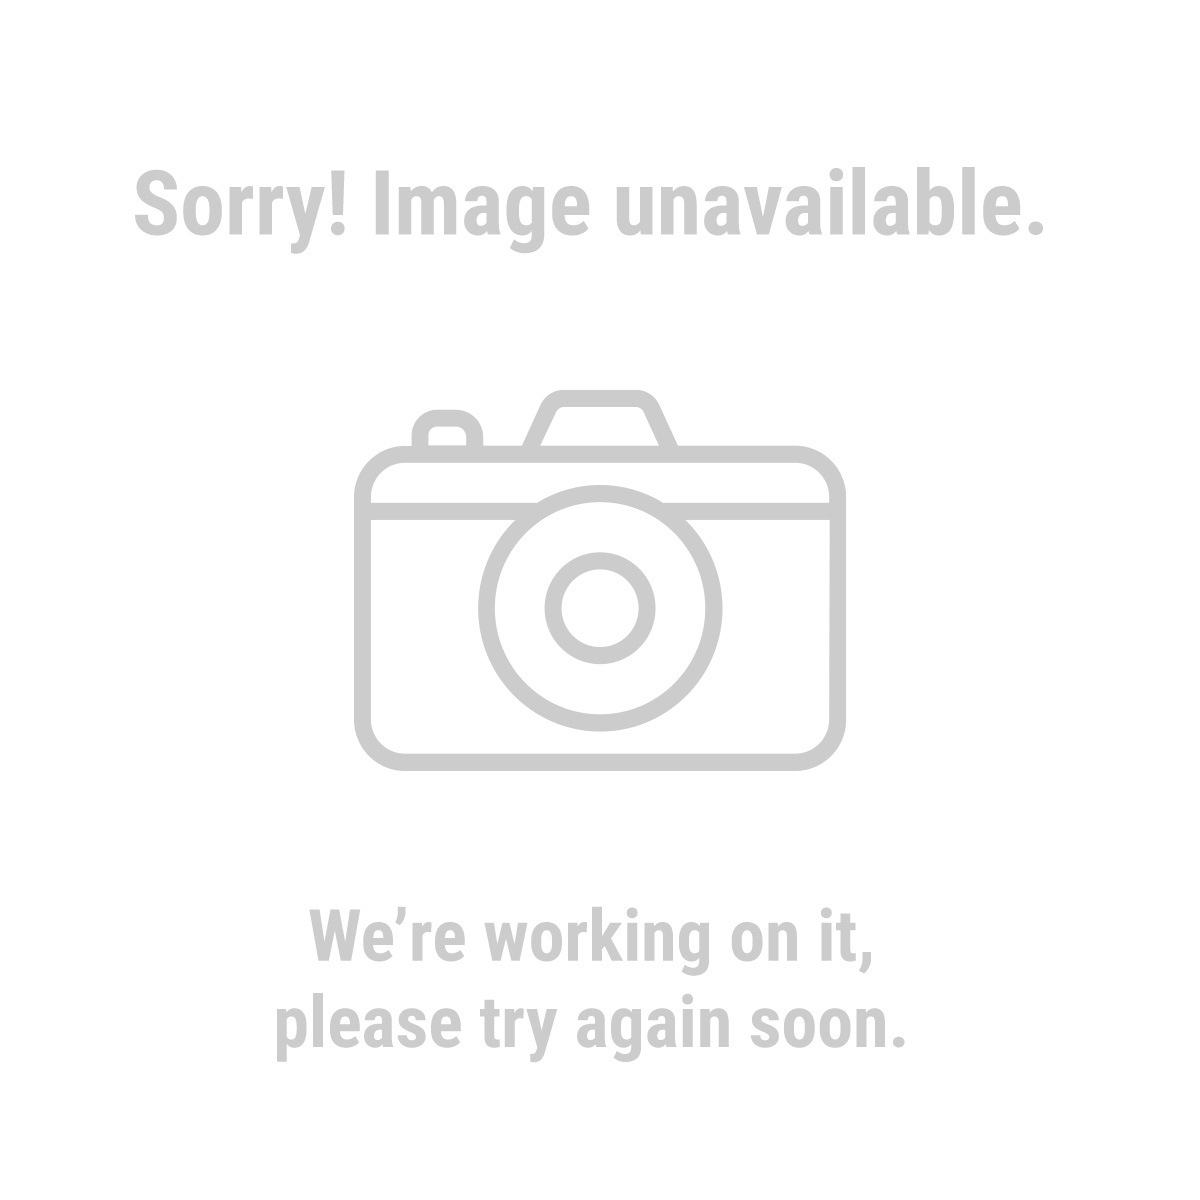 4.8 in. X 8 in. 4 Ply Rated Tire with 4 Lug Rim